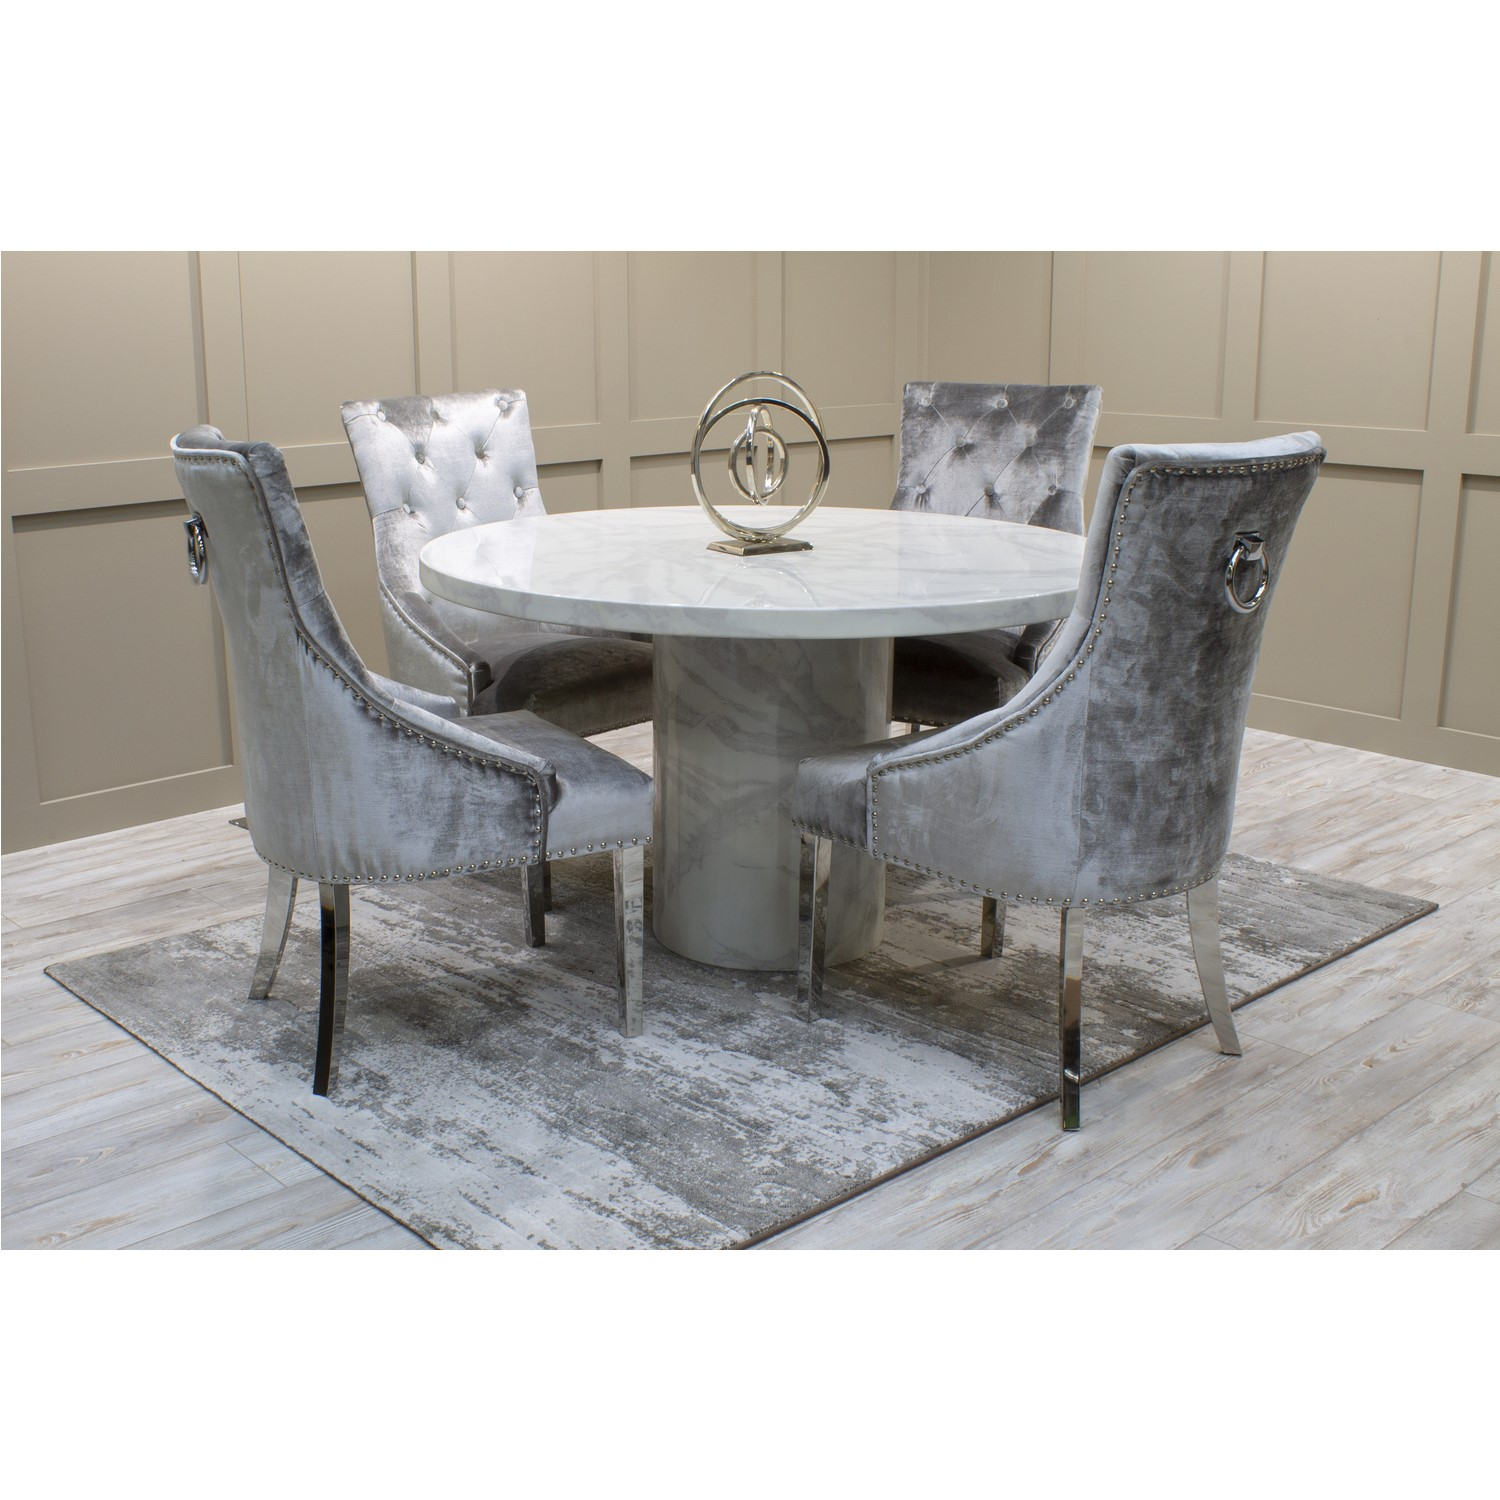 Round White Marble Dining Table With 4 Grey Velvet Dining Chairs Seats 4 Vida Living Carra Furniture123